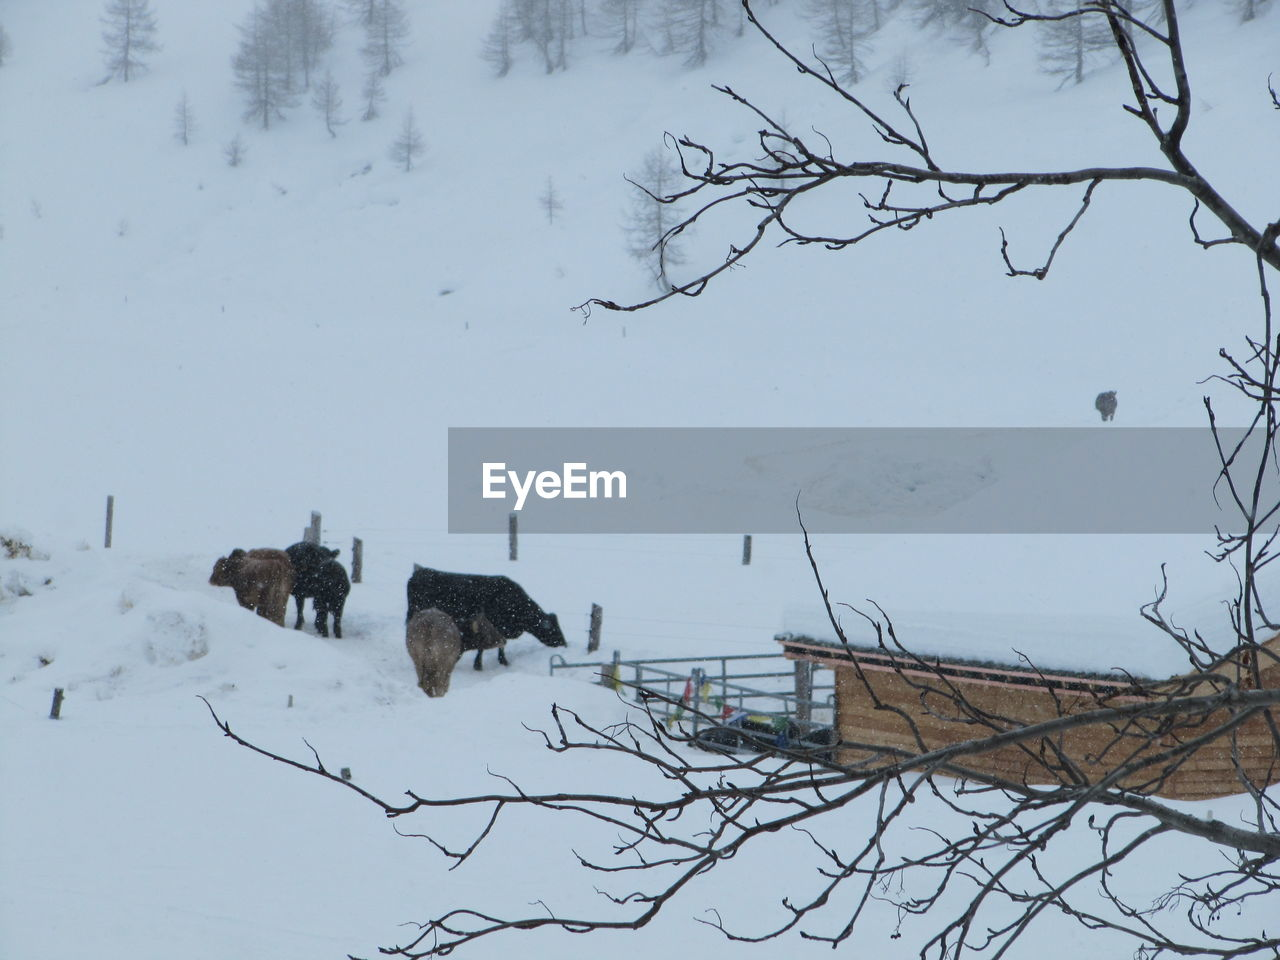 Animals grazing on snow covered landscape